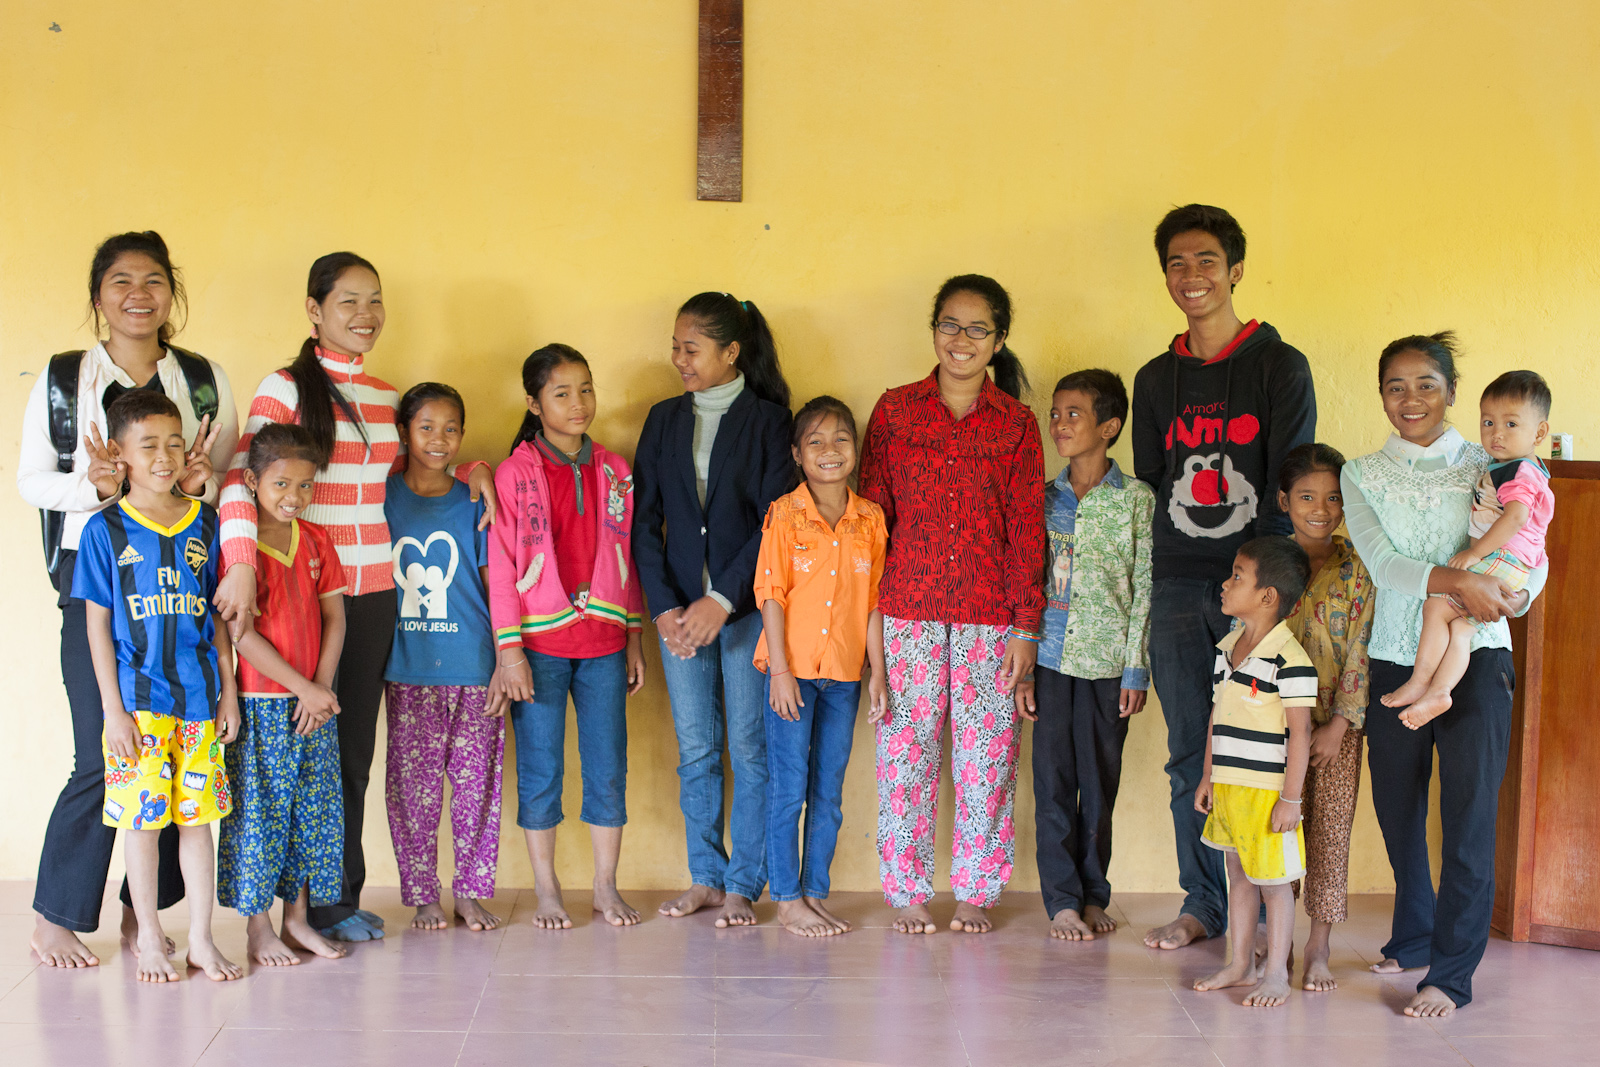 Alongsiderswith their little brothers and sisters anda few extras. Chanthy is wearing orange and white stripes. Piya and her little brother are on the right in yellow.